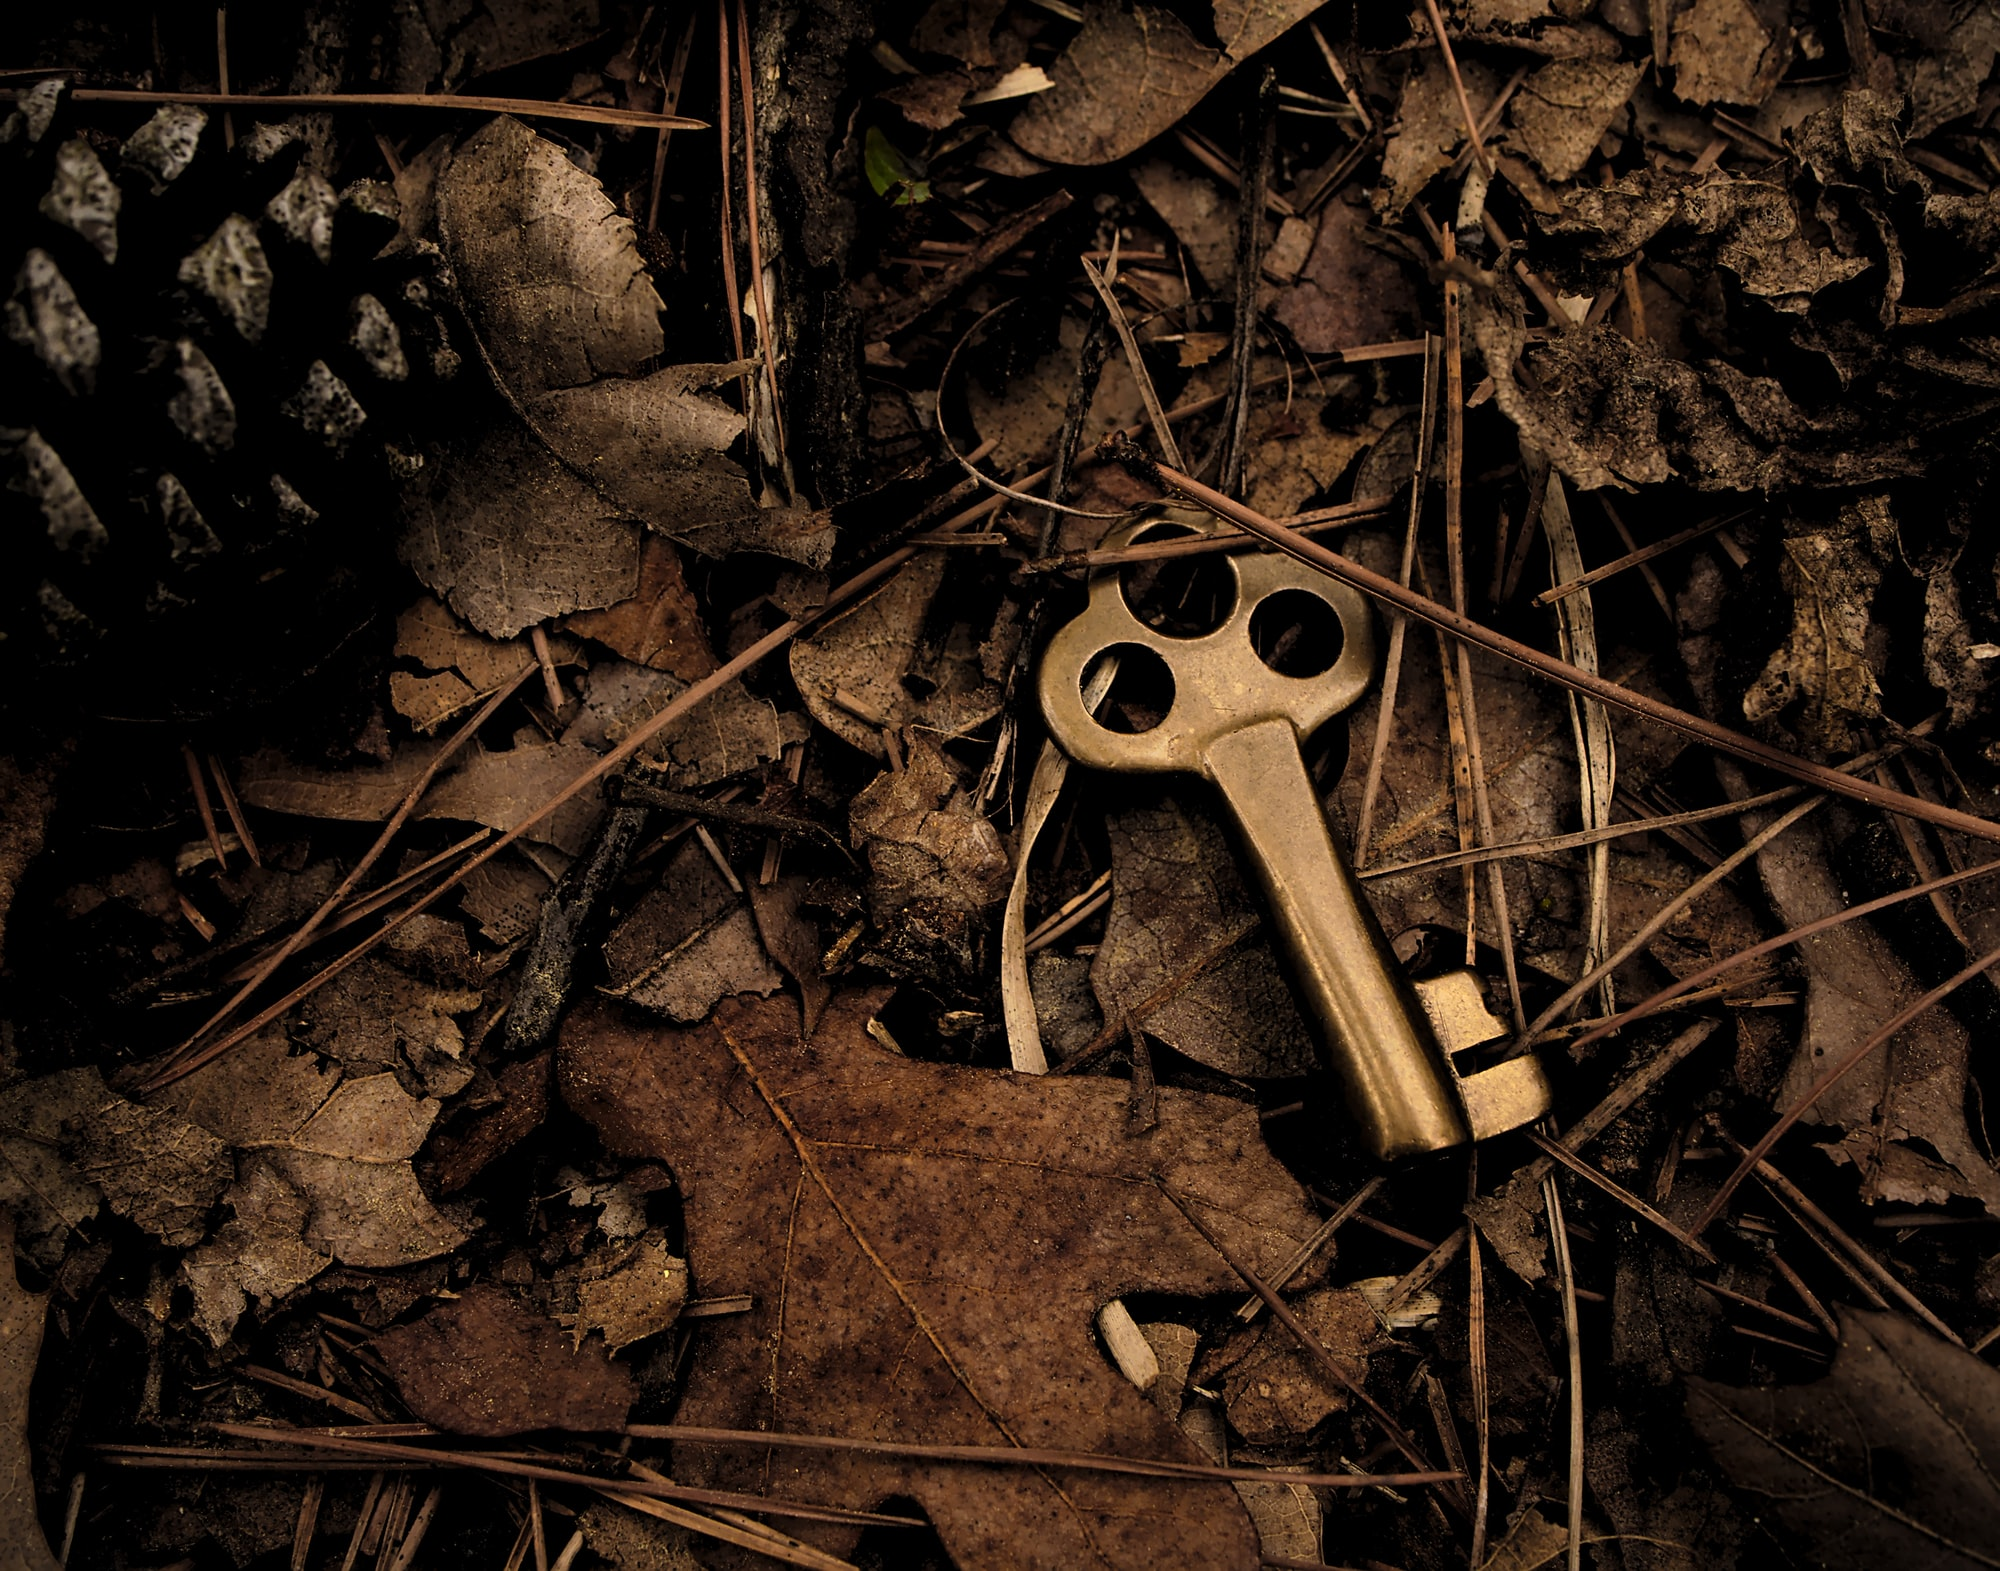 An old brass key dropped in the woods.